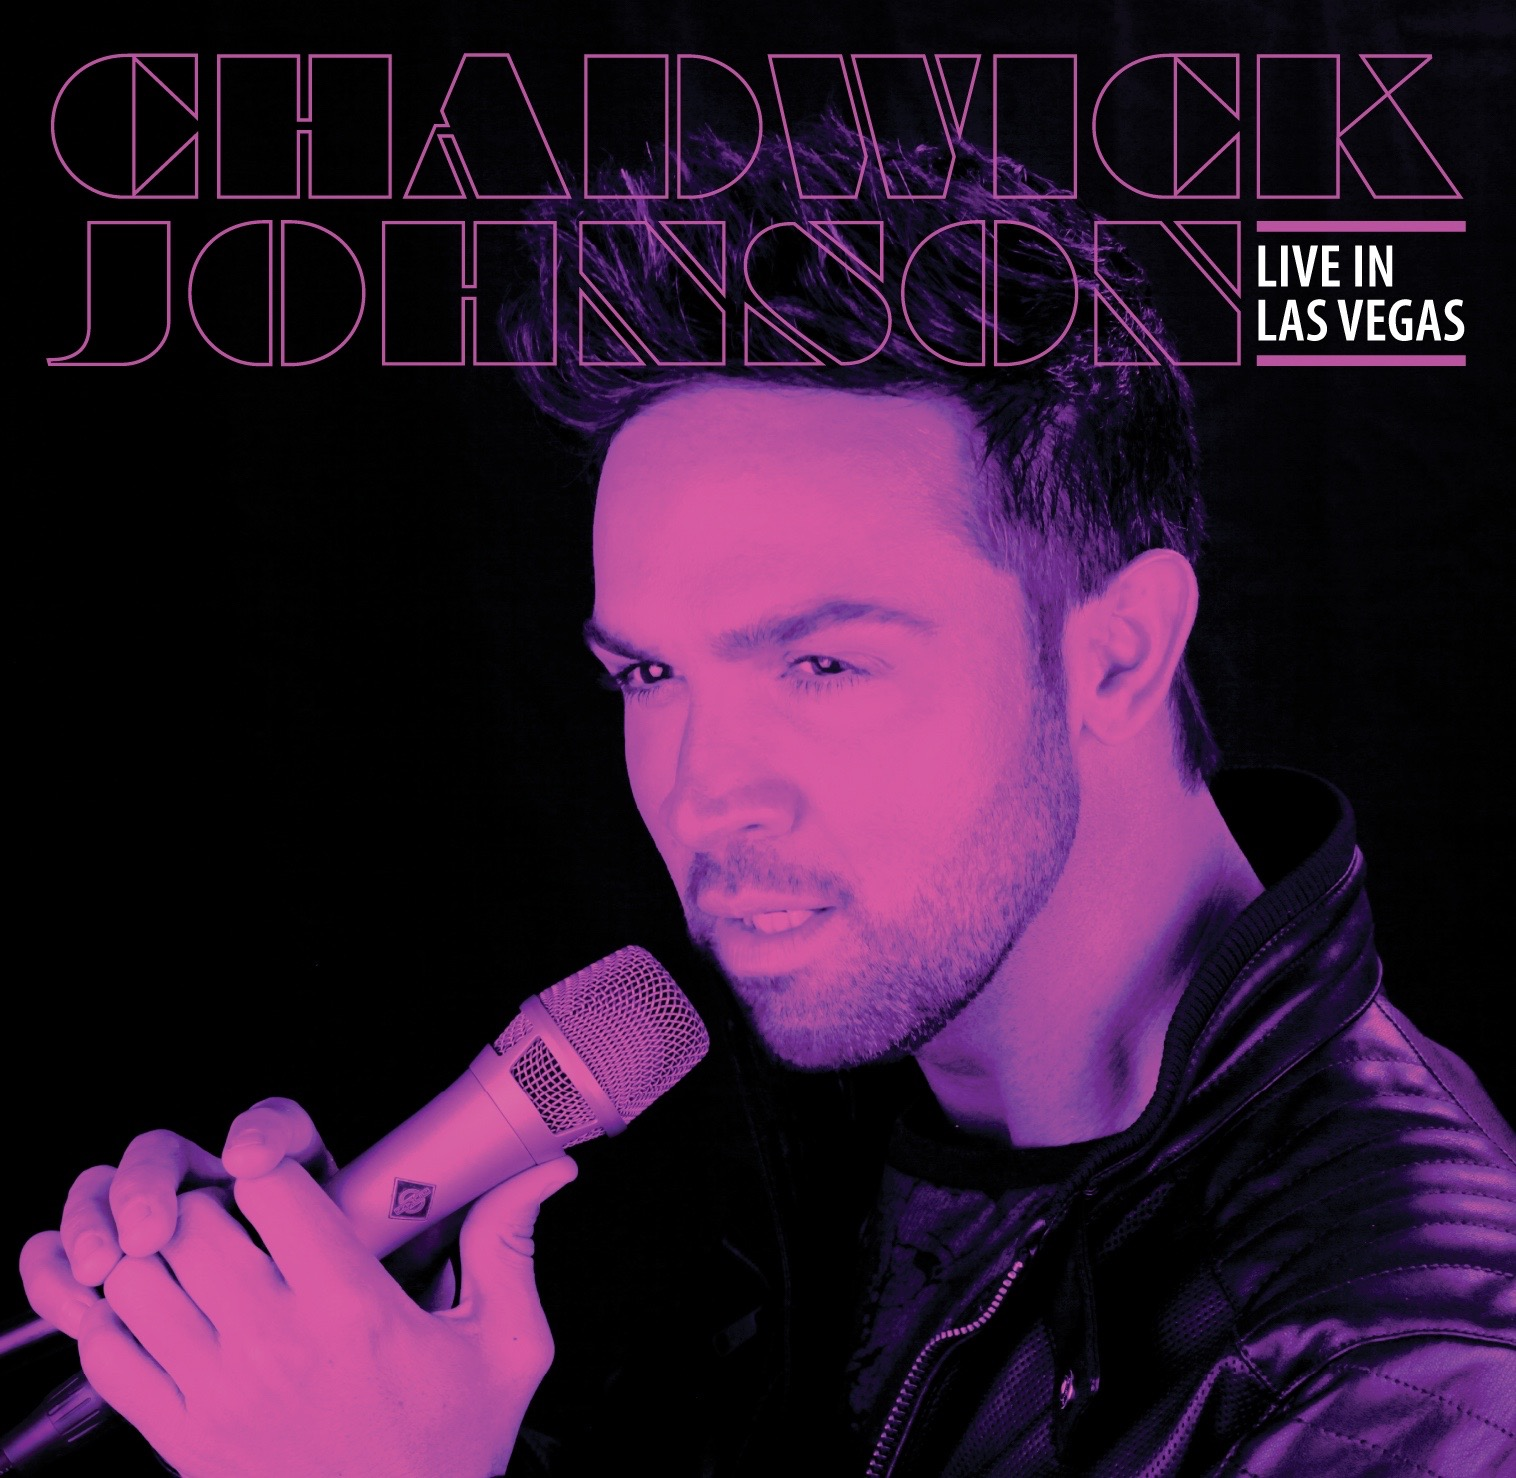 ChadwickJohnson_promo Live in Vegas CD cover (1)